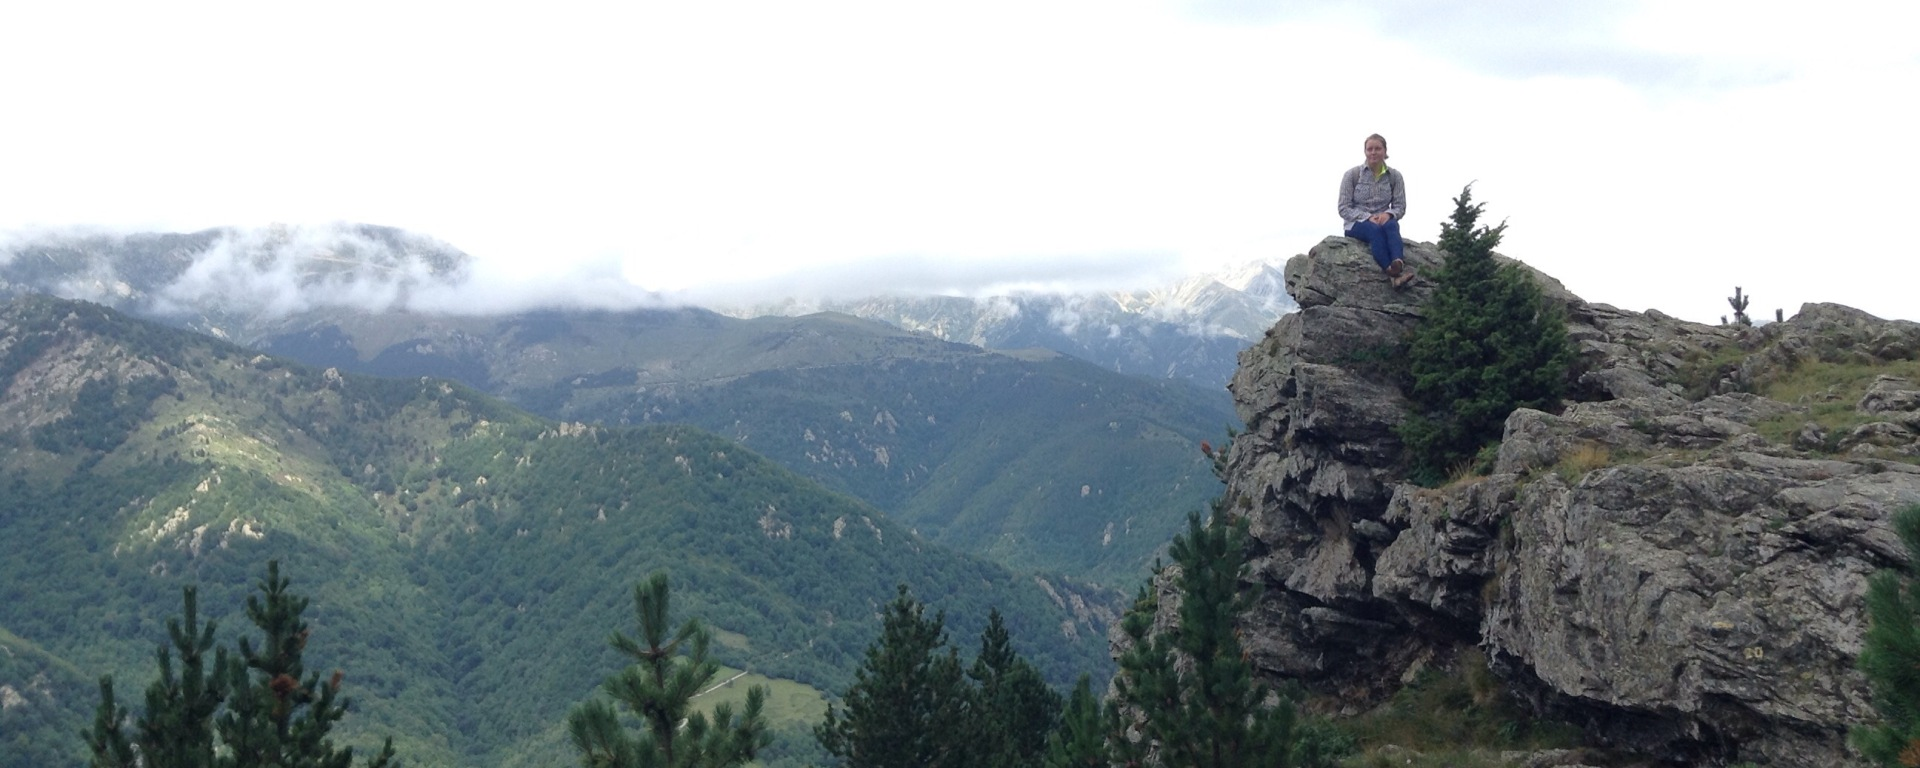 Camprodon and the Pyrenees, Catalonia